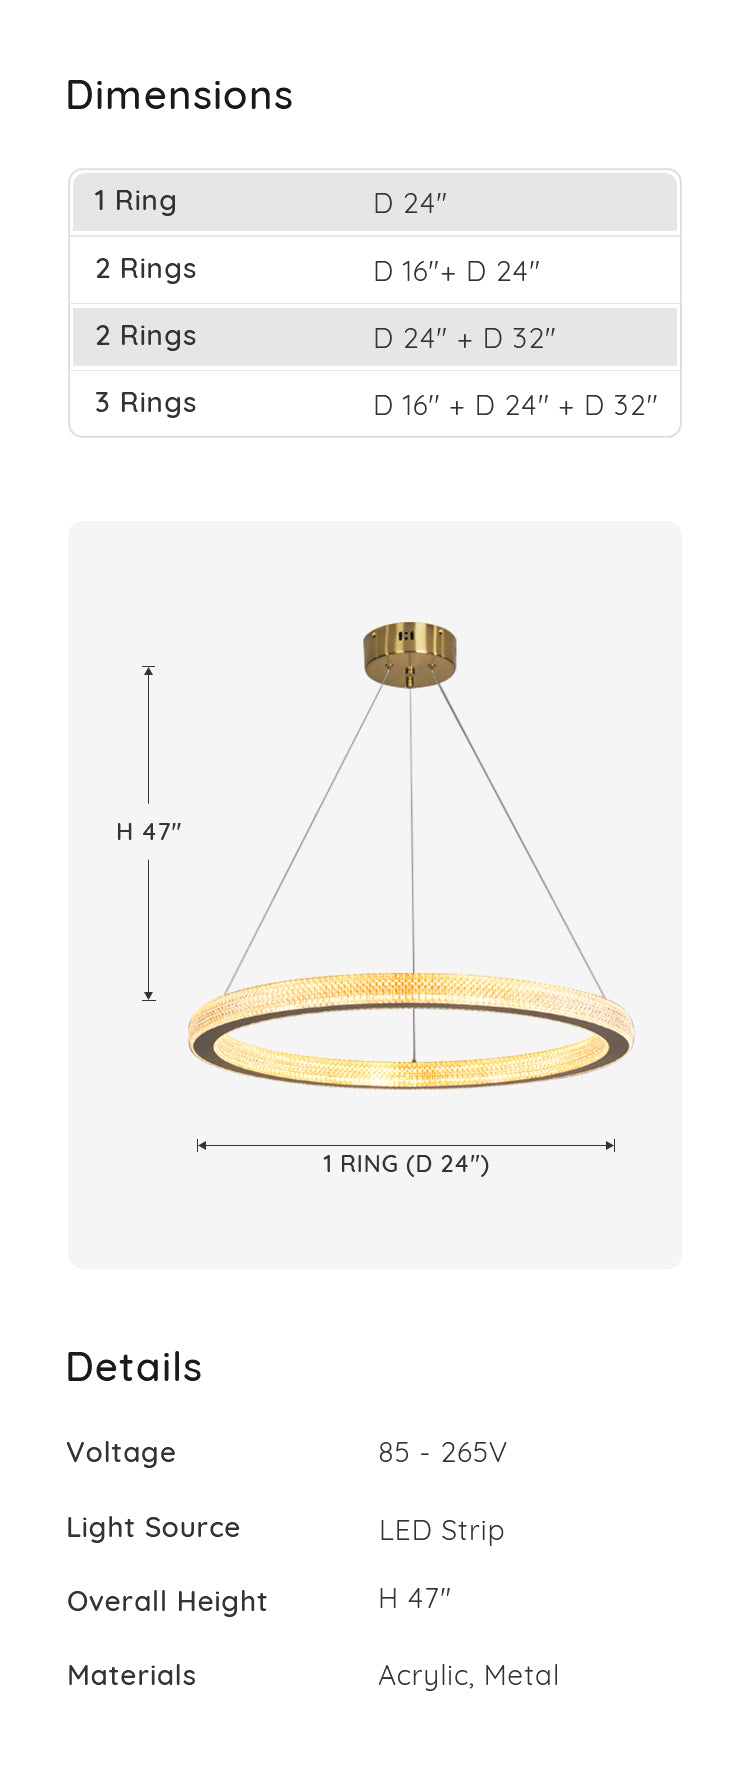 Ring Chandelier Hanging Suspension, 1 Ring dimension & parameters